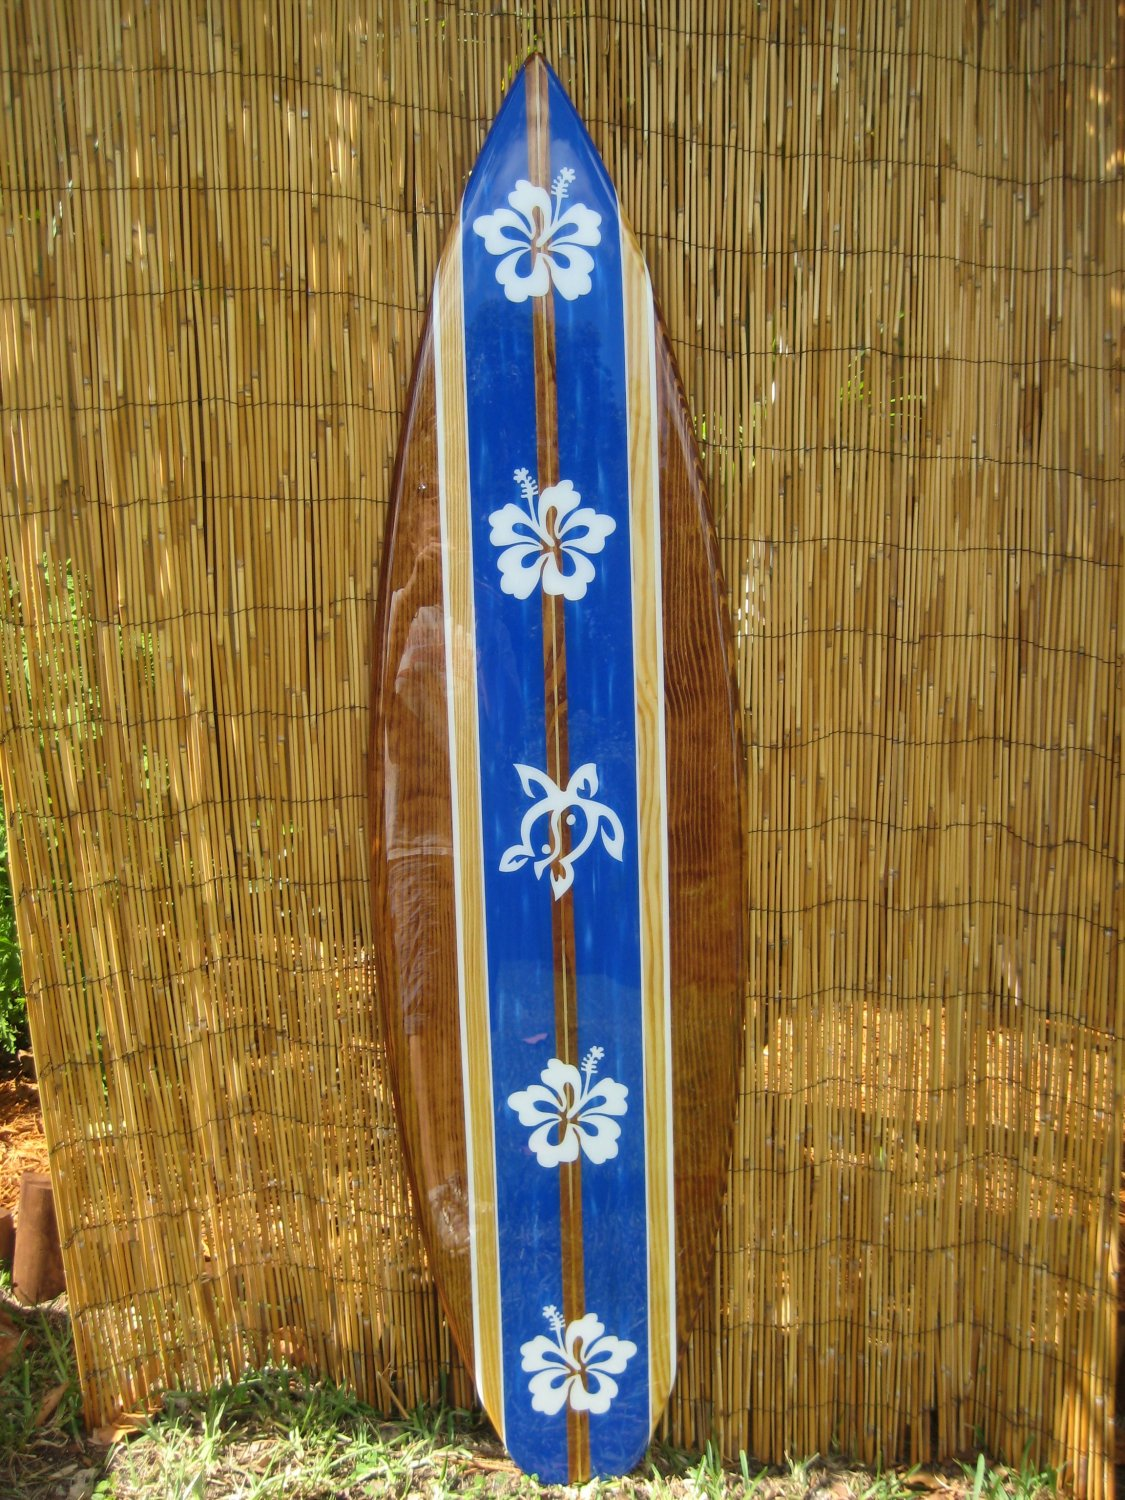 5ft Decorative Turtle Hibiscus Surfboard Wall Art by TiKi SouL